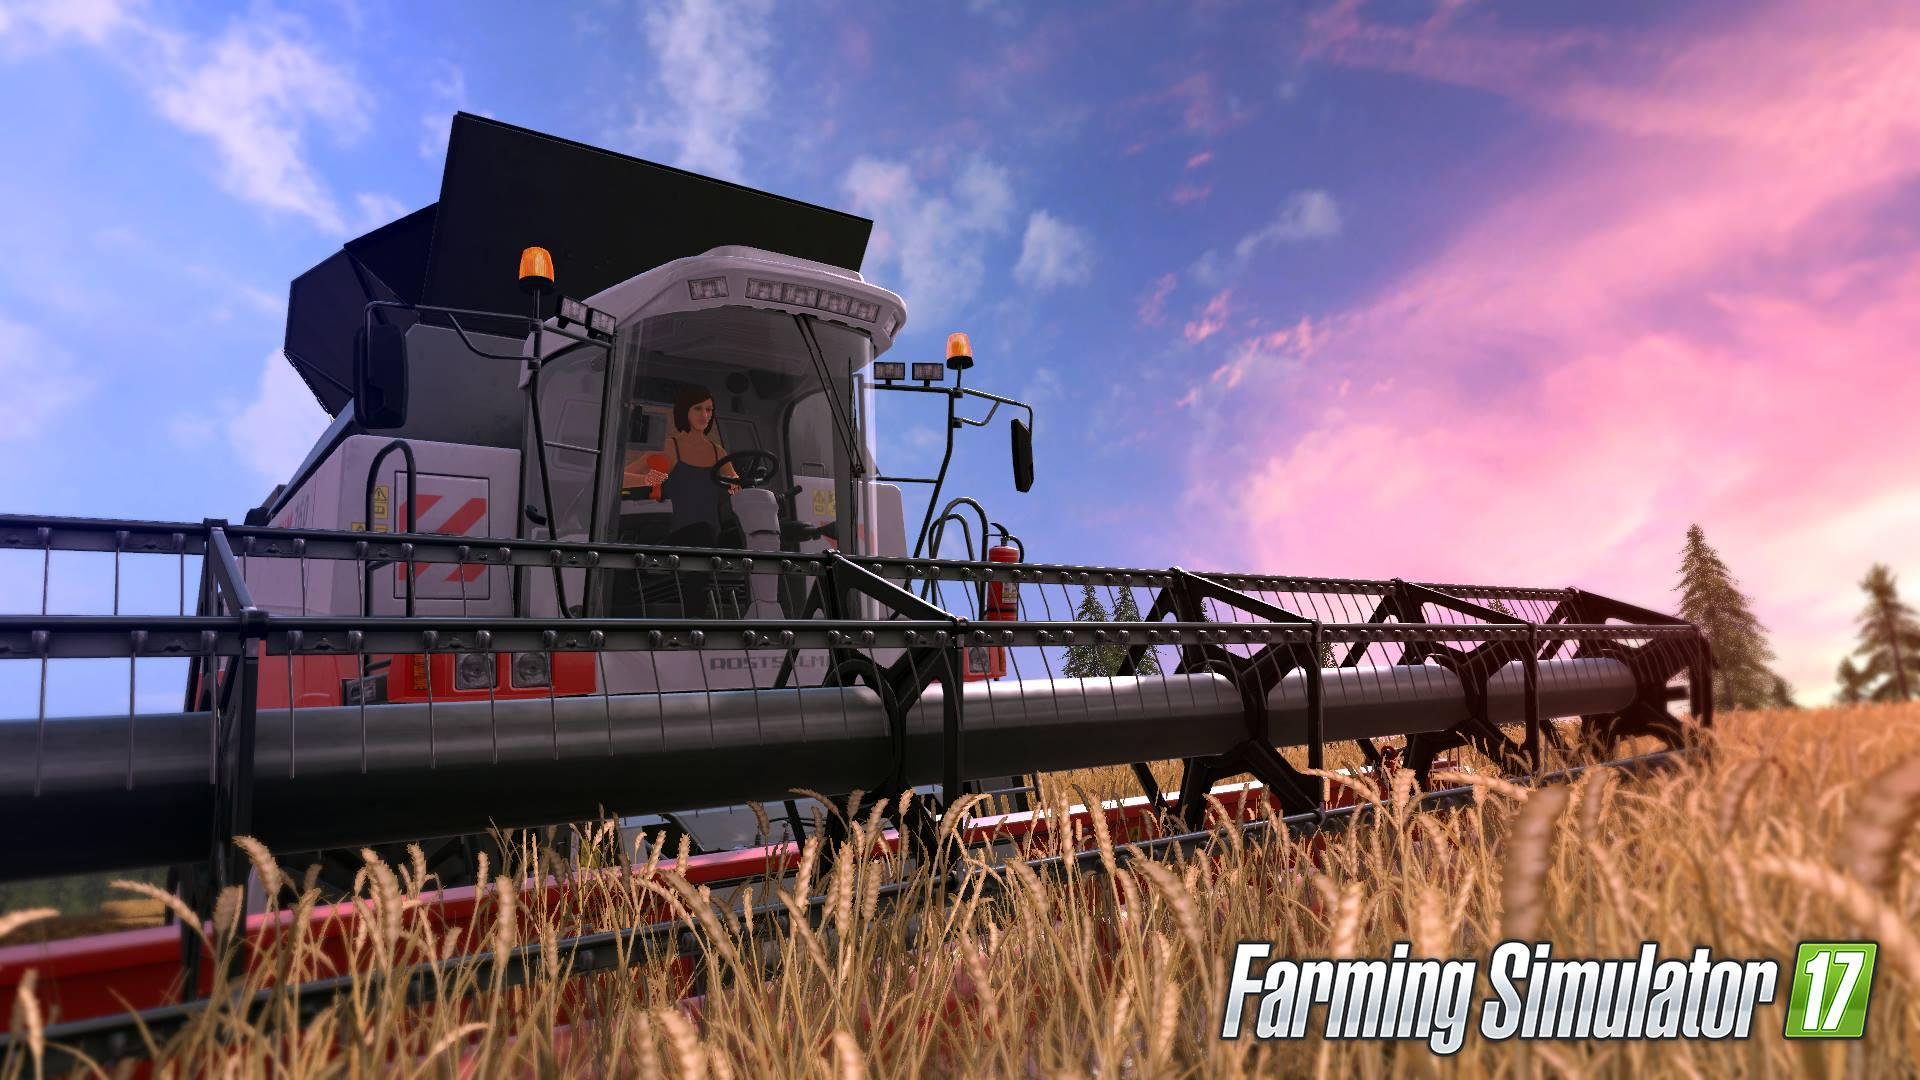 fs17-offers-the-option-to-play-as-a-female-farmer_3